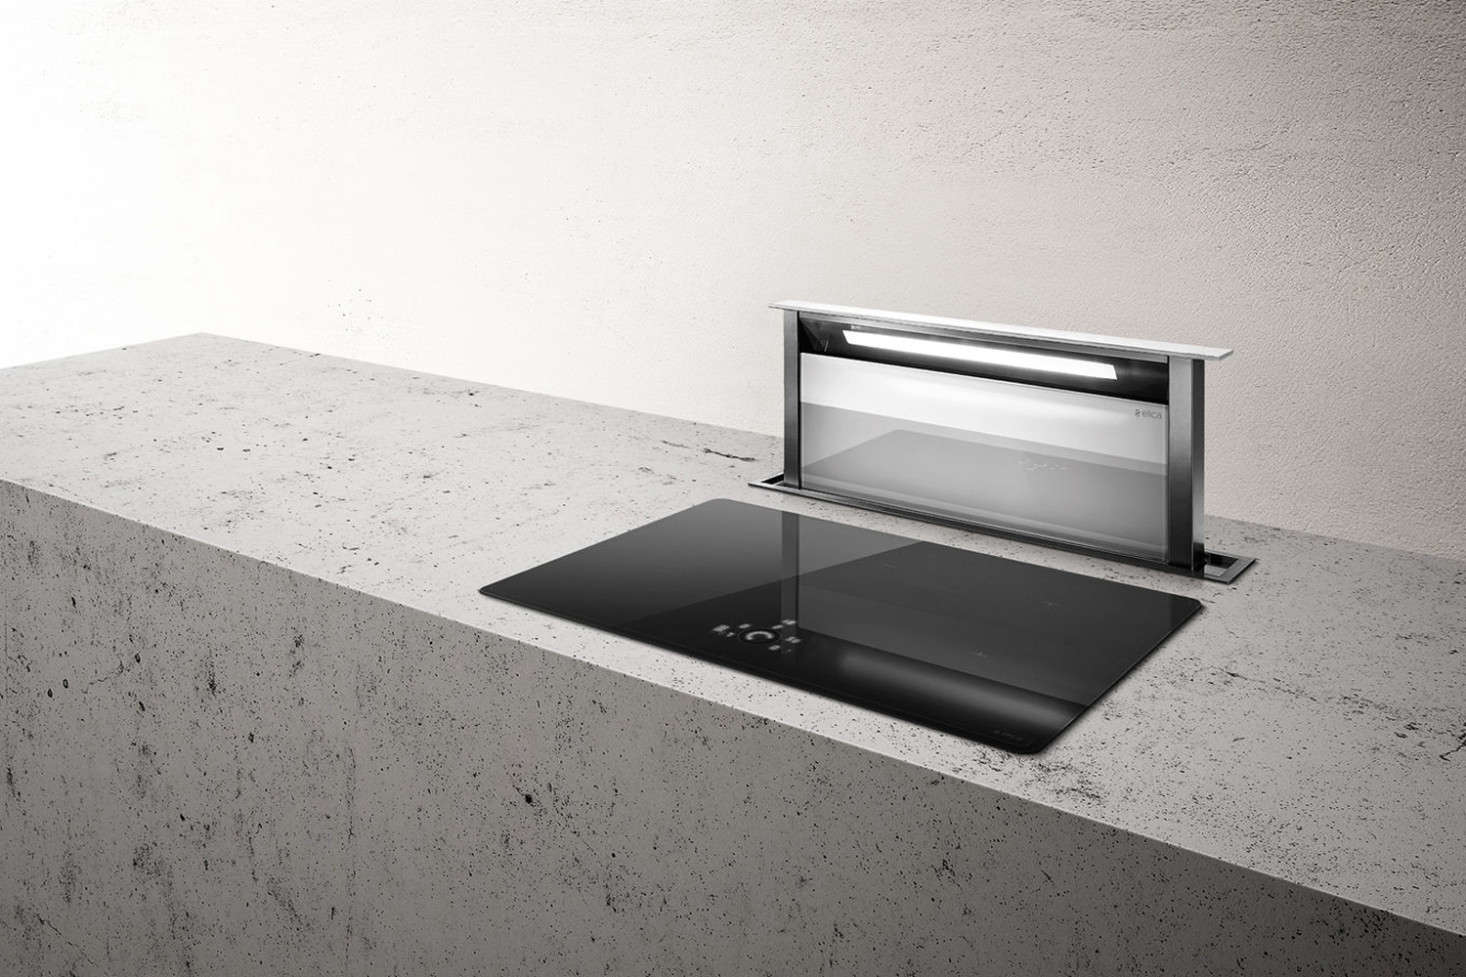 10 Easy Pieces Downdraft Range Vents Remodelista